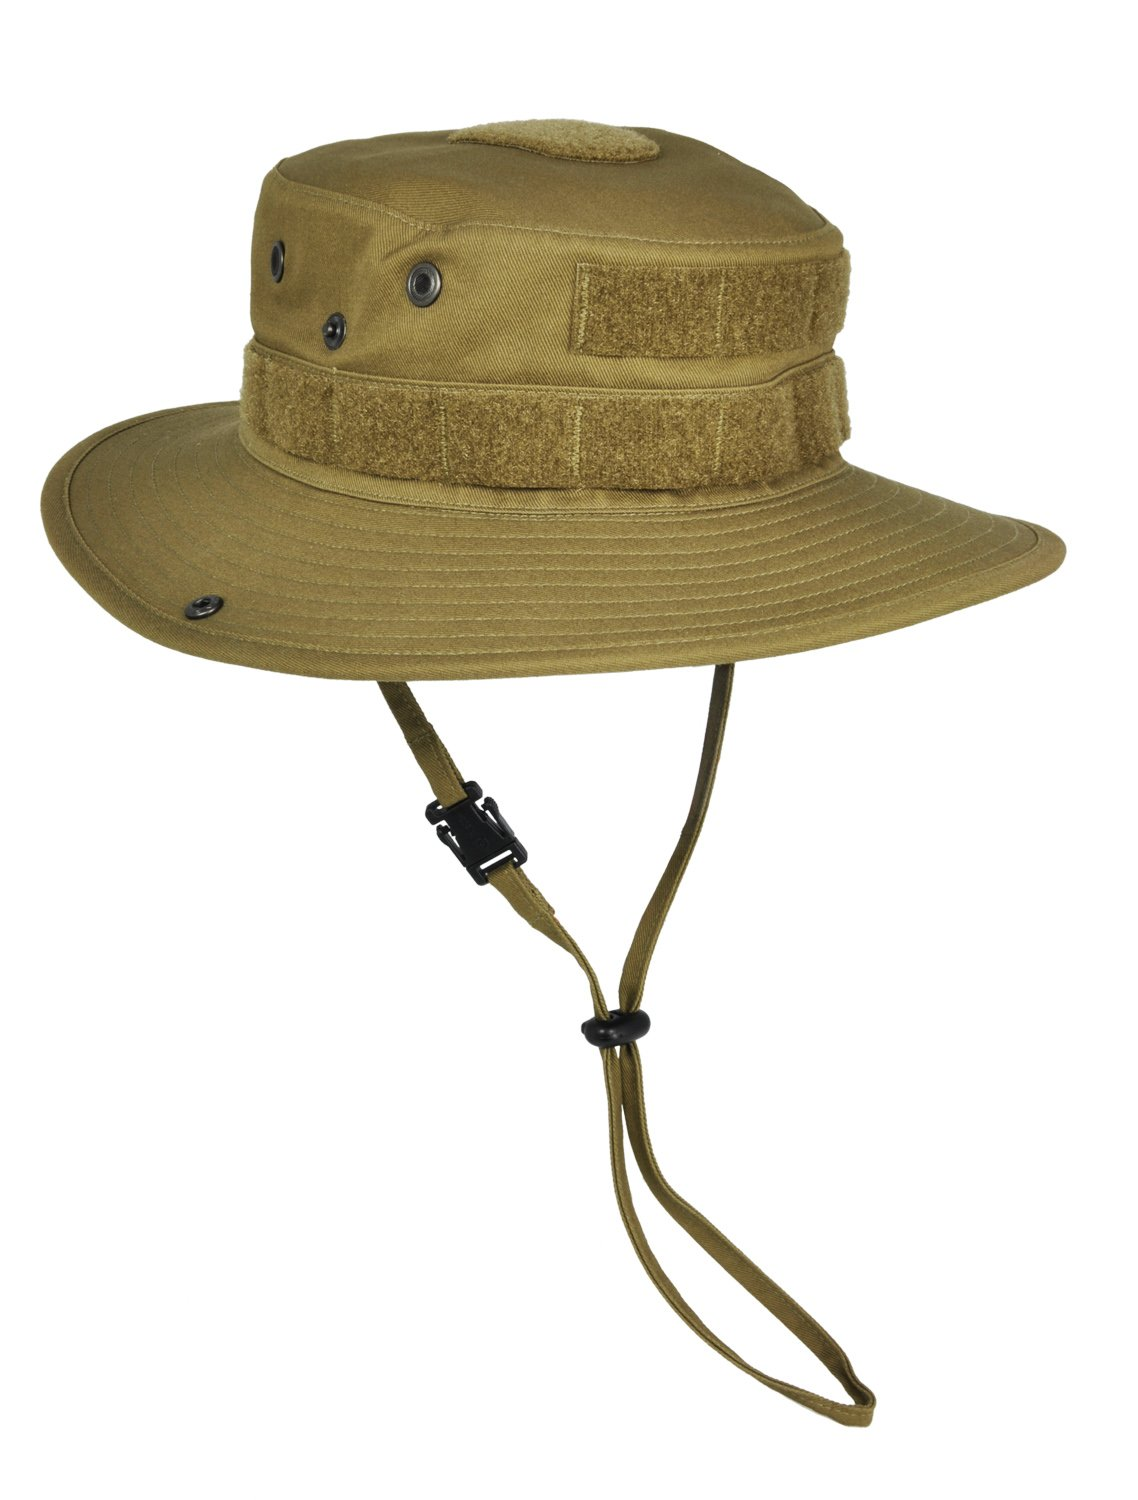 Hazard 4 SunTac Cotton Boonie Hat with Molle, Coyote, X-Large